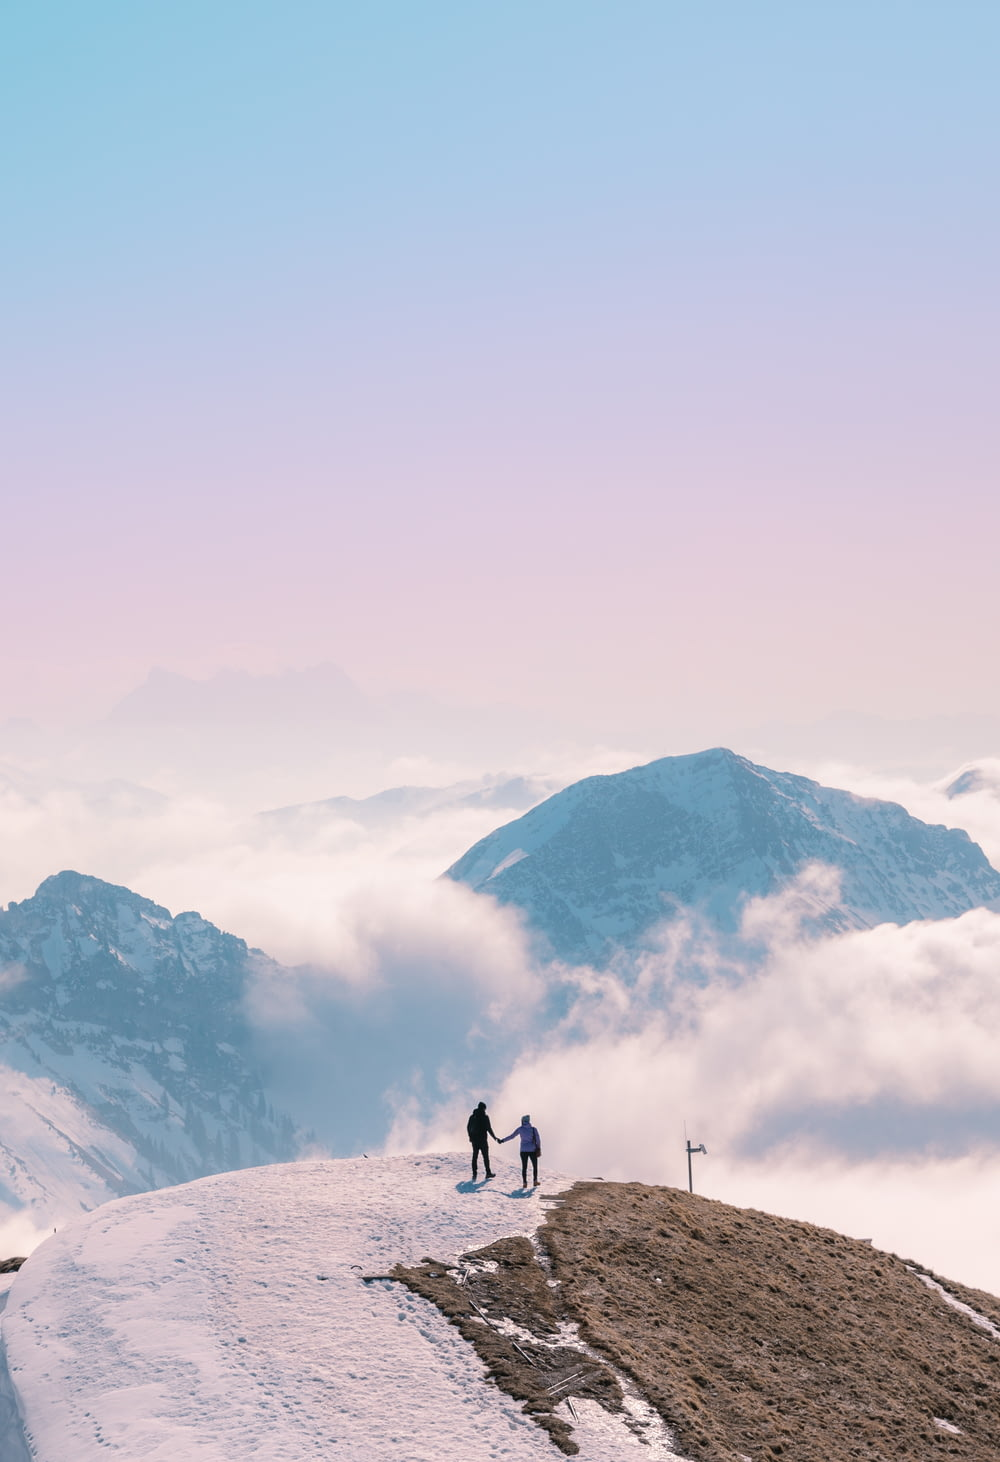 2 people walking on snow covered ground during daytime